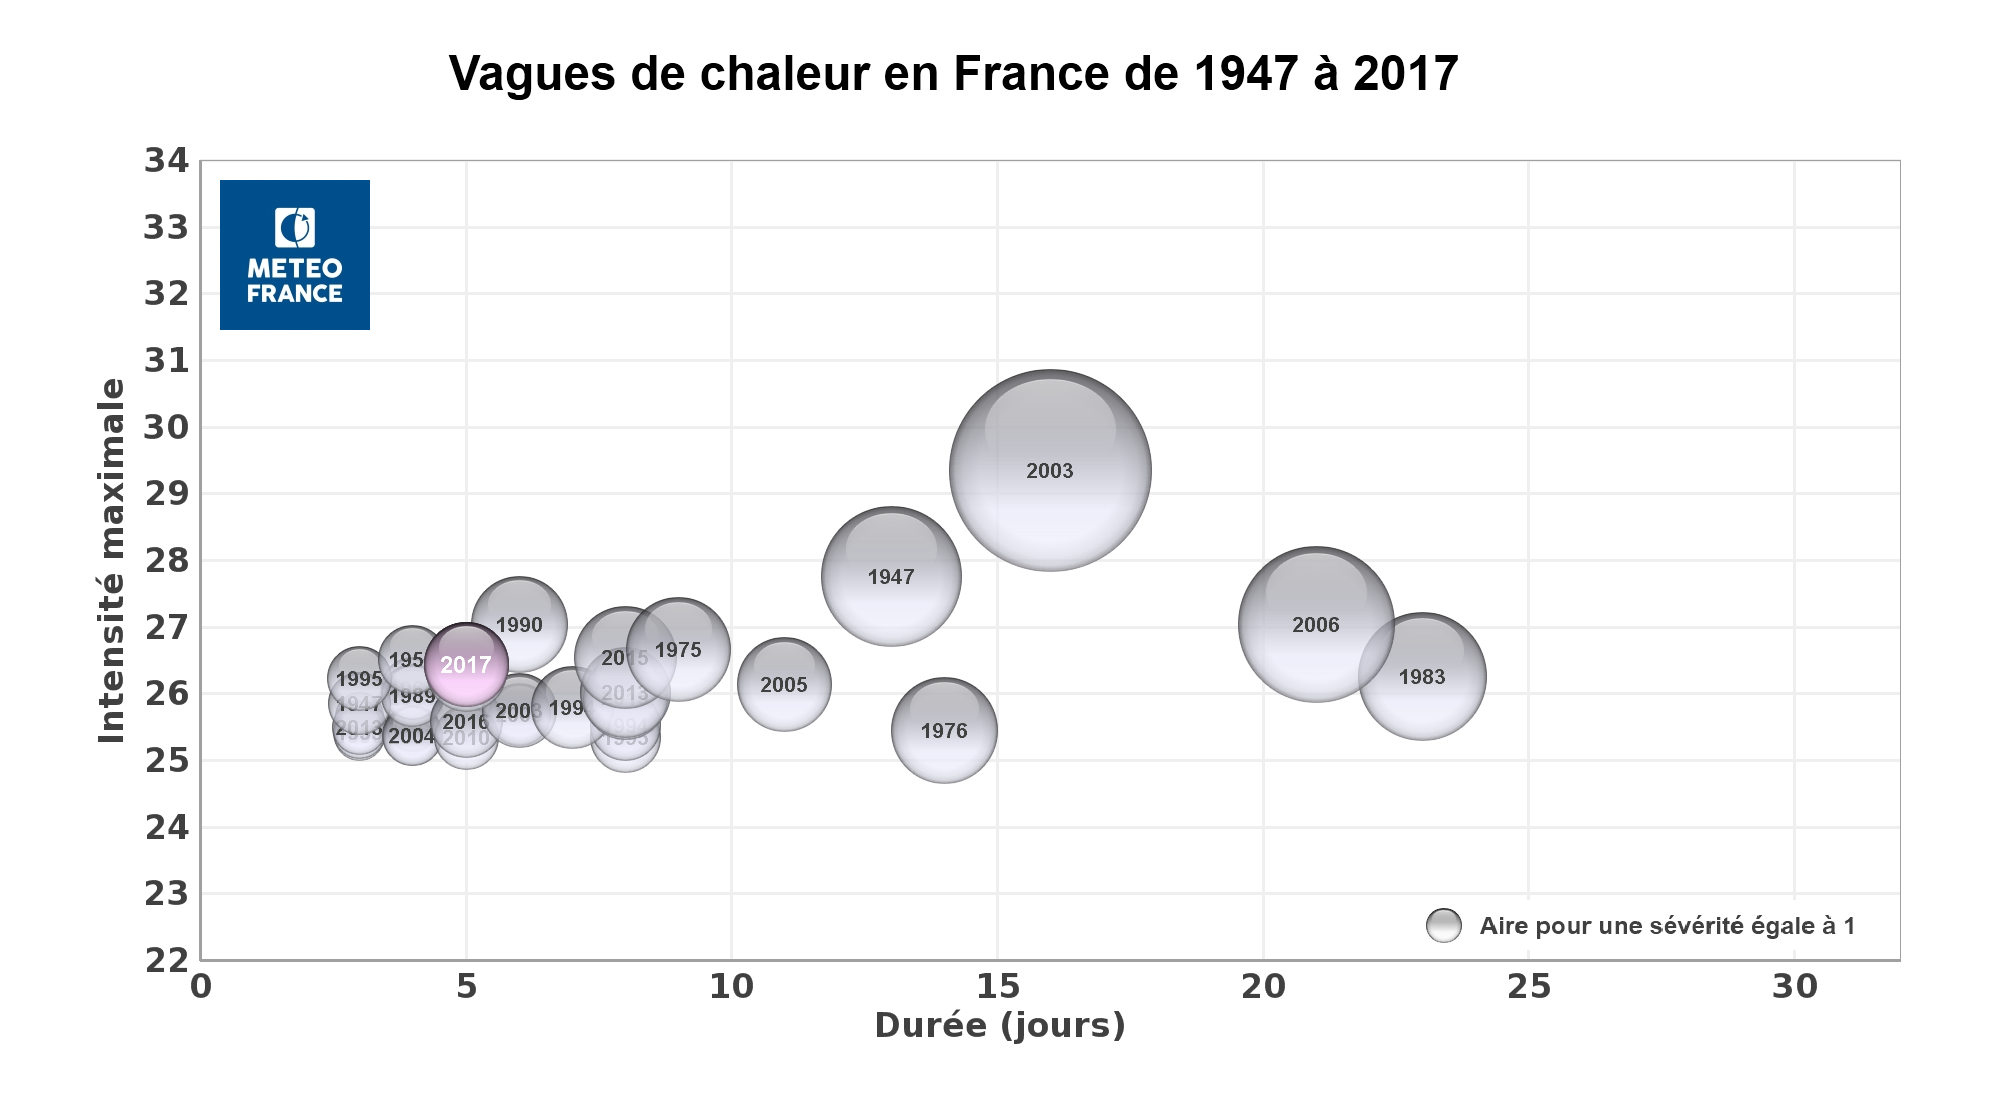 photo:MeteoFrance;desc:Heat waves recorded in France over the period 1947-2017.;